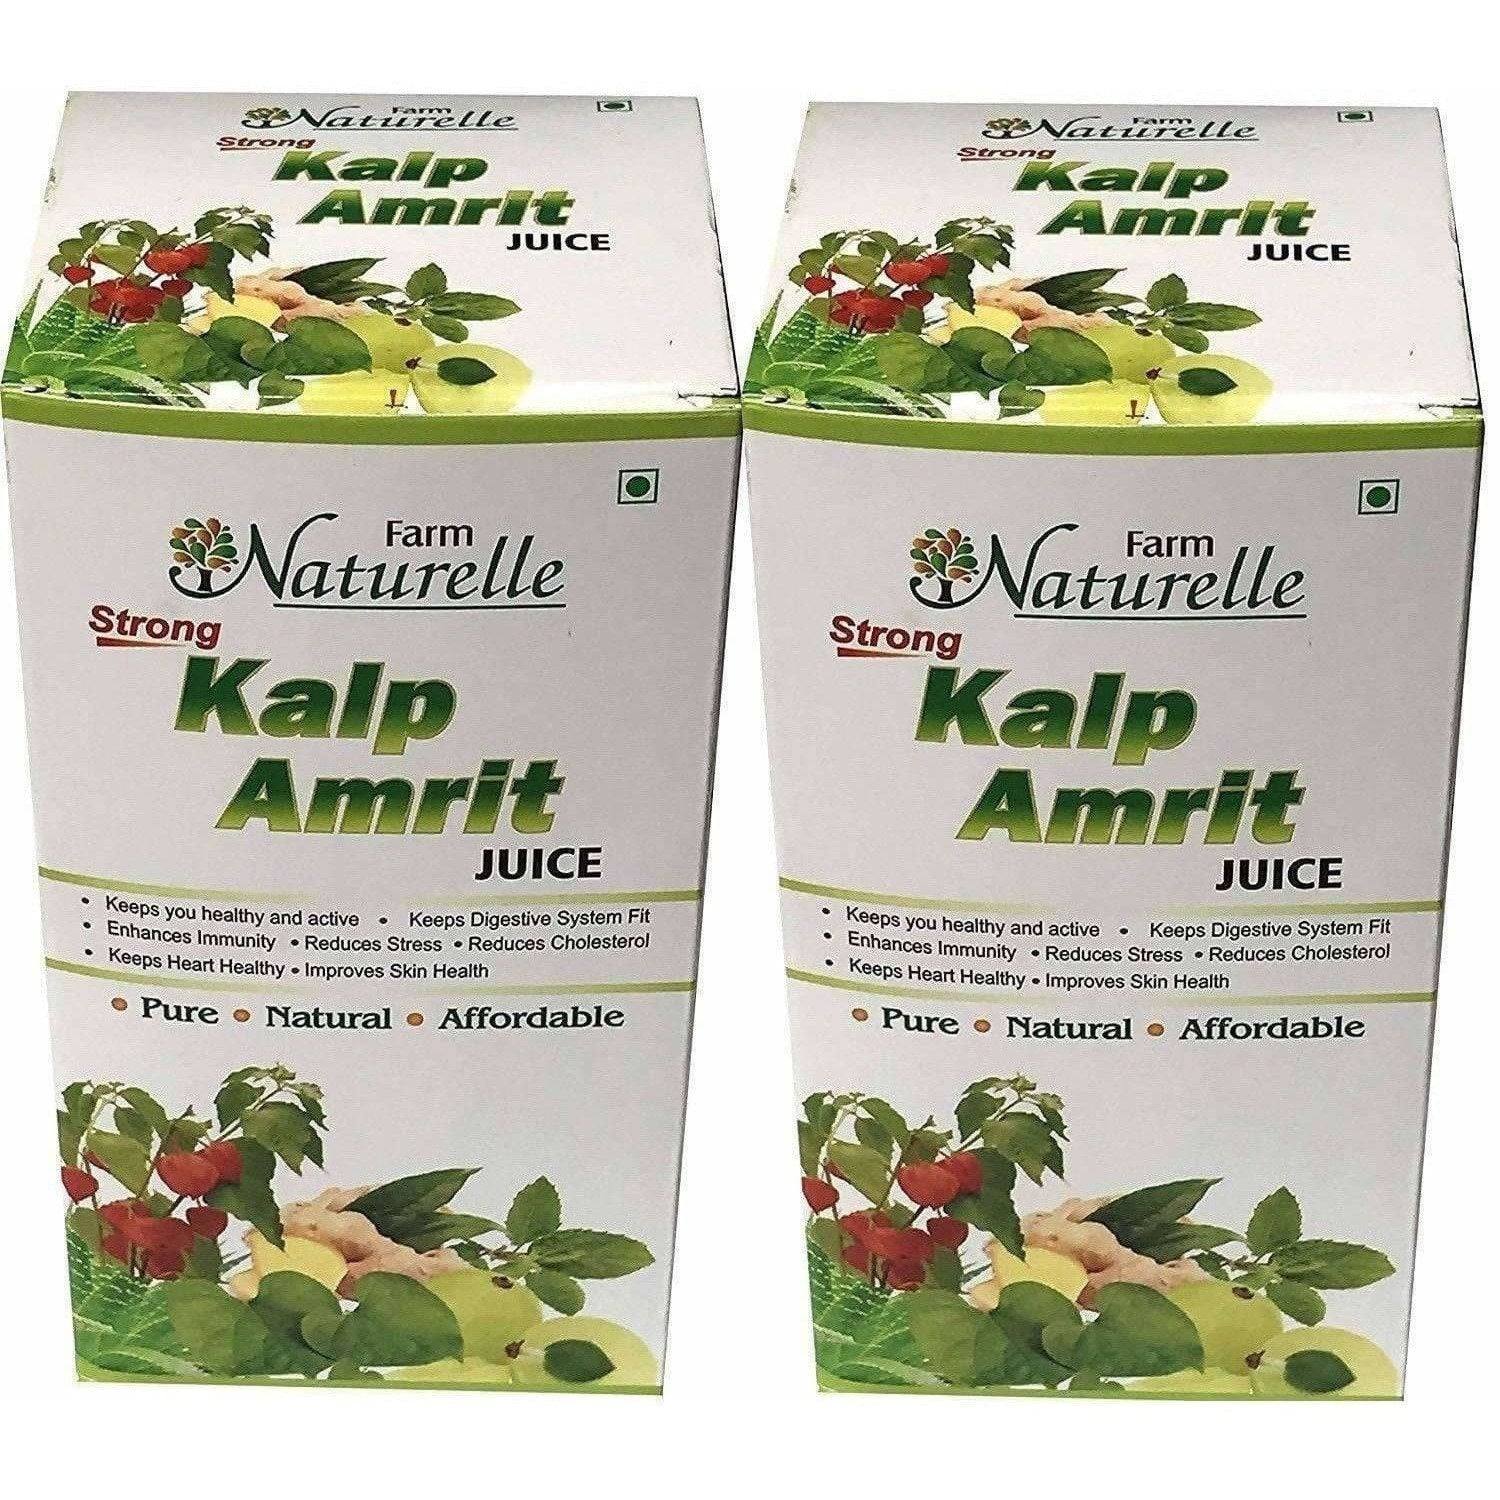 Farm Naturelle - Kalp Amrit Ras Juice Pack of 2